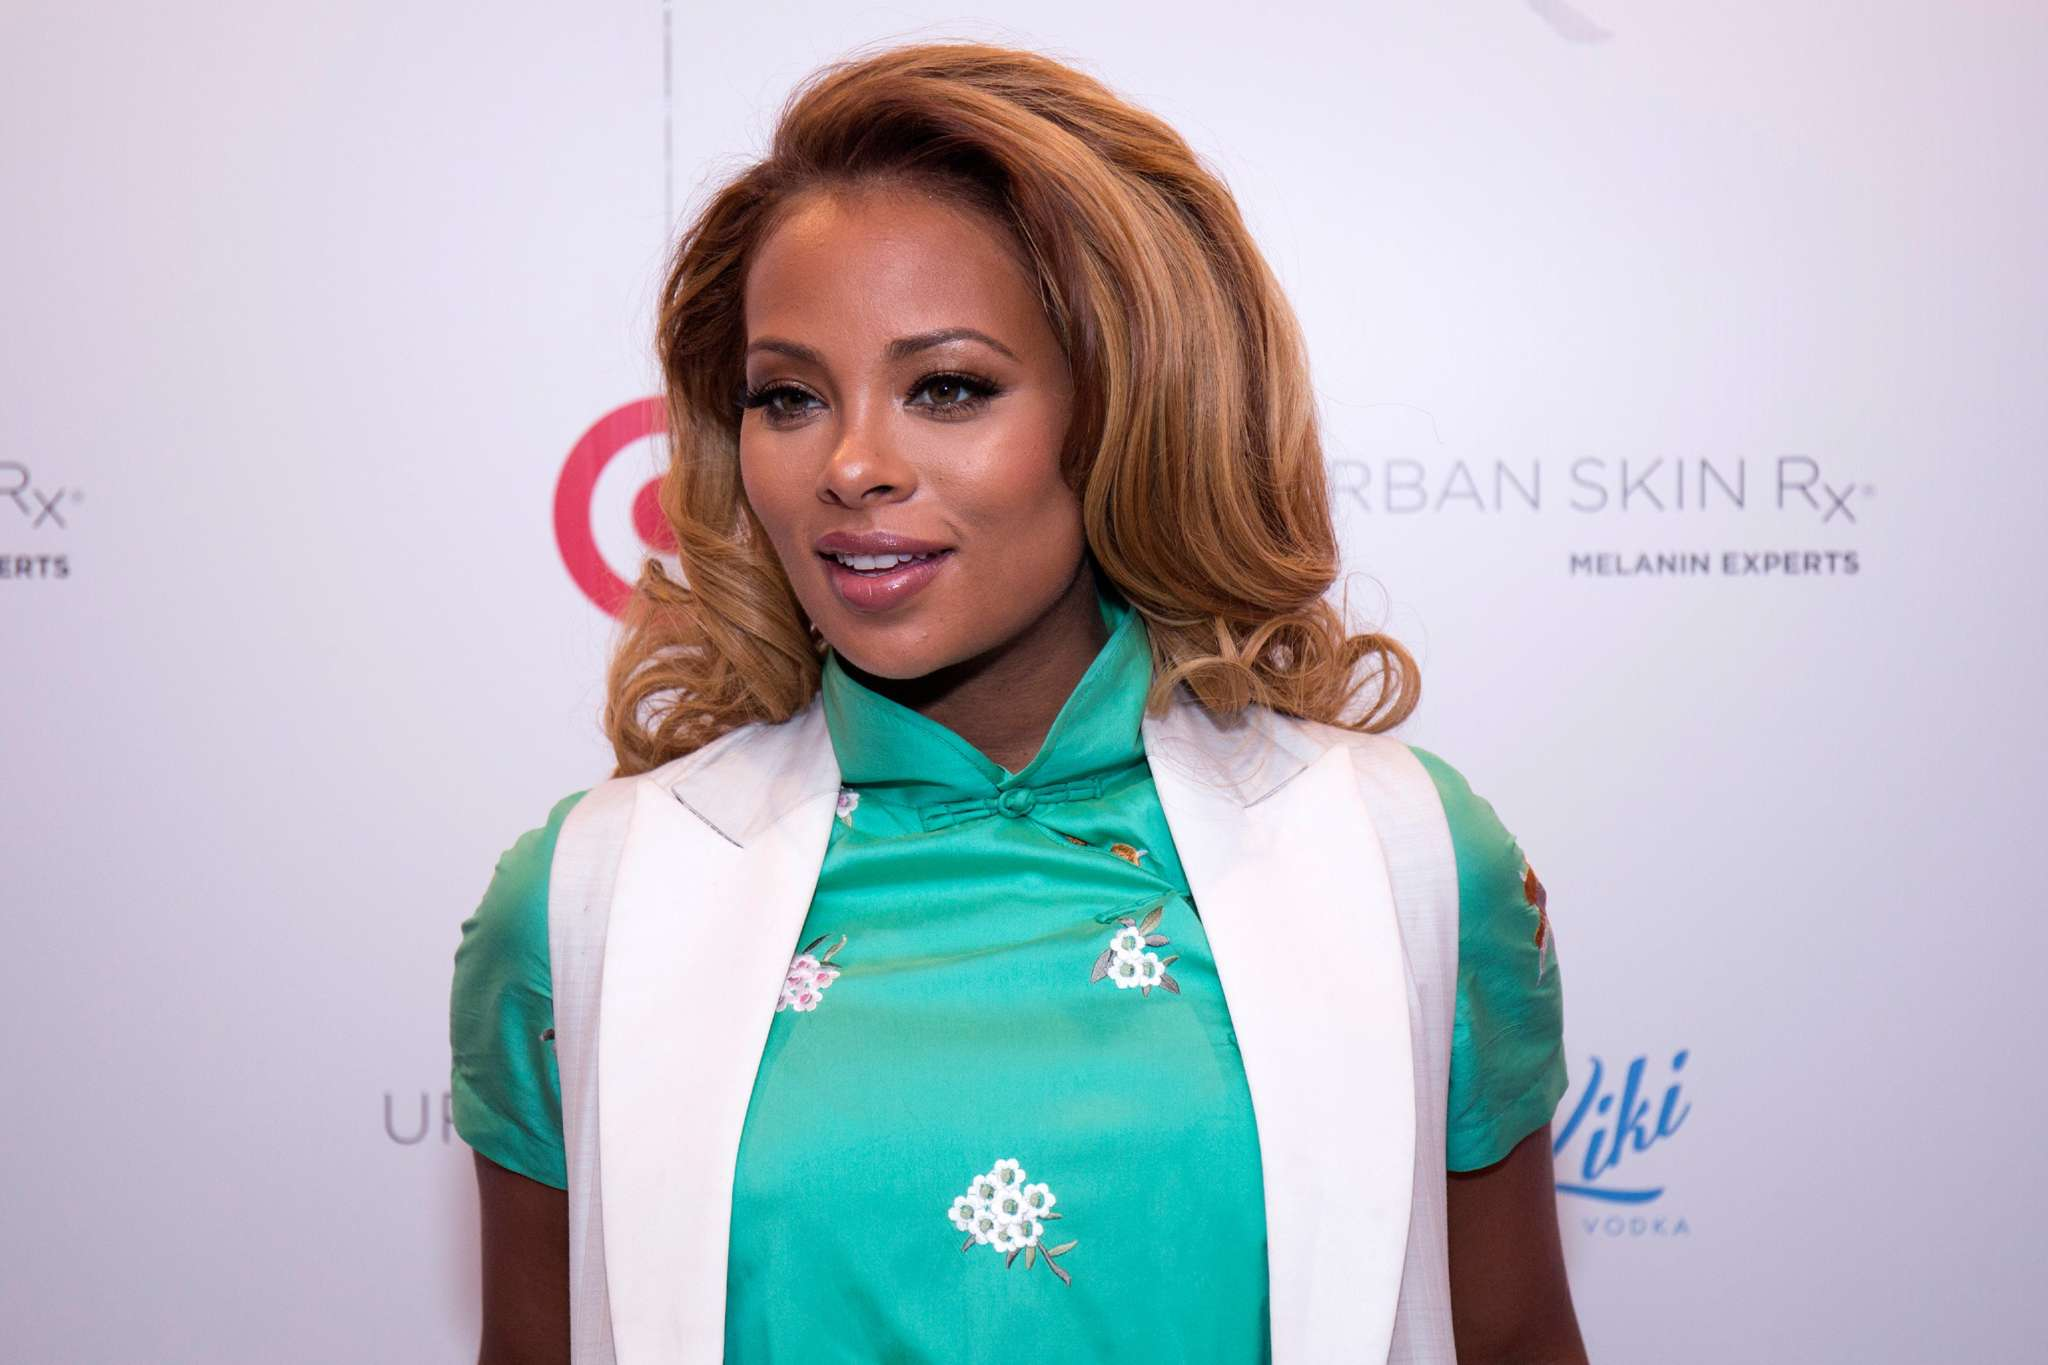 Eva Marcille Gets Cheeky With Her Latest Post - See It Here